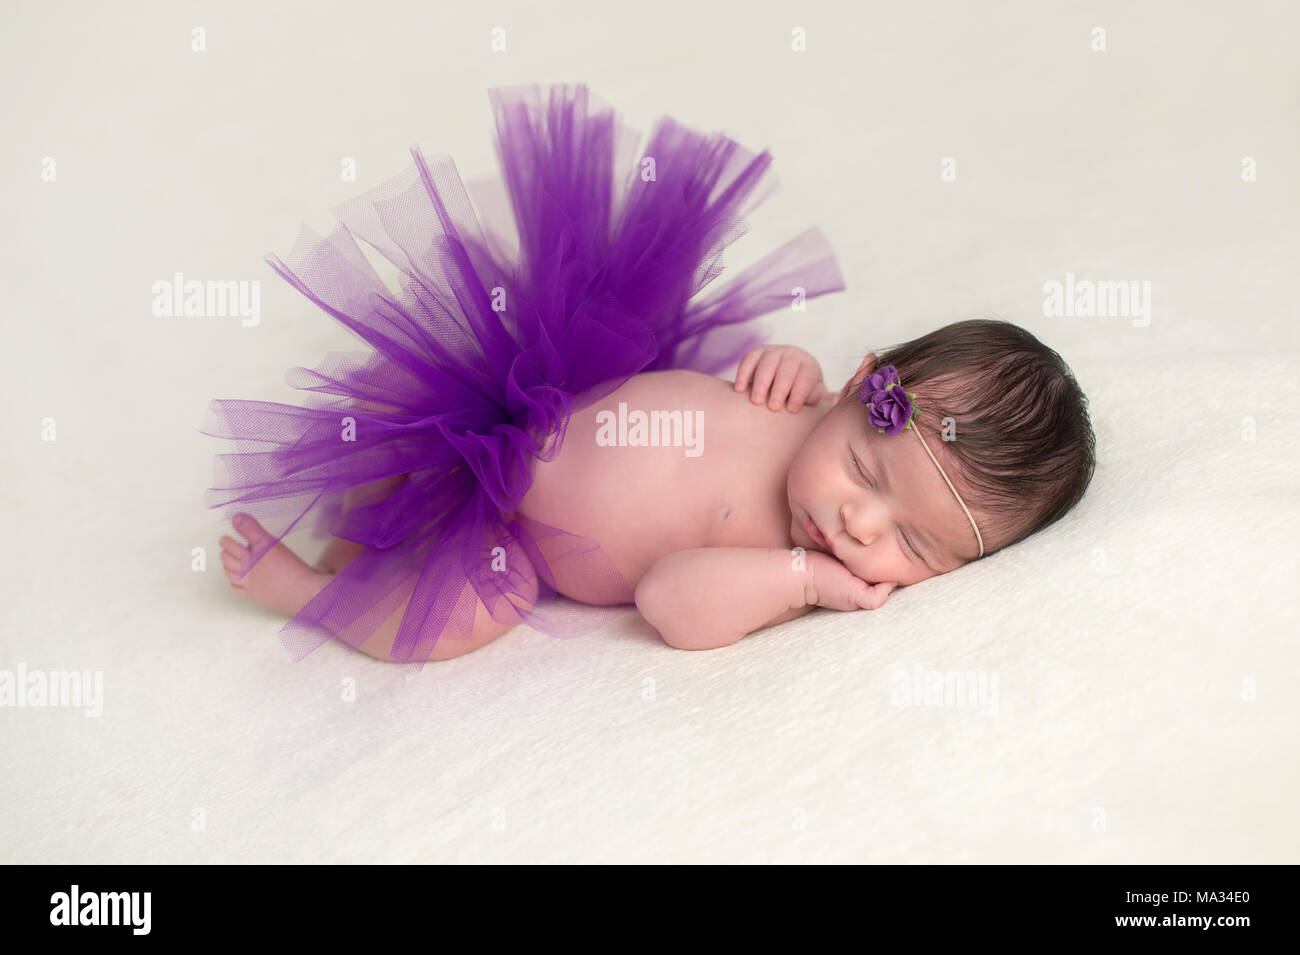 Sleeping Newborn Baby Girl Wearing A Purple Tulle Tutu And Flower